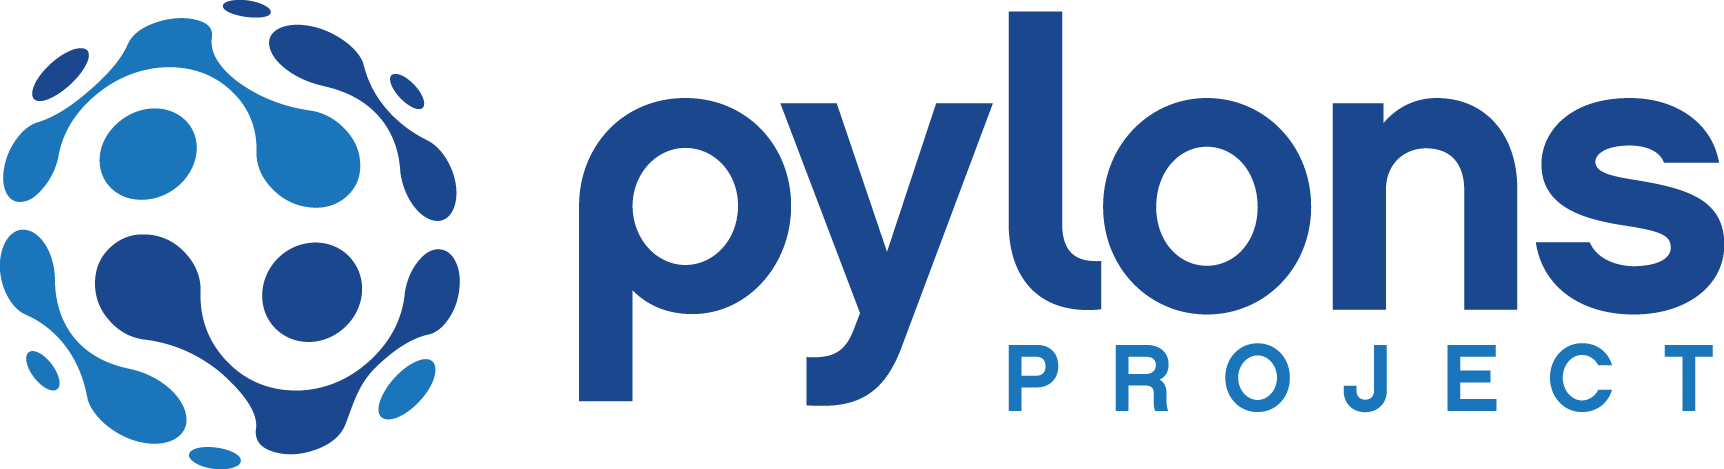 File pylons project logo. Do png files have transparent background